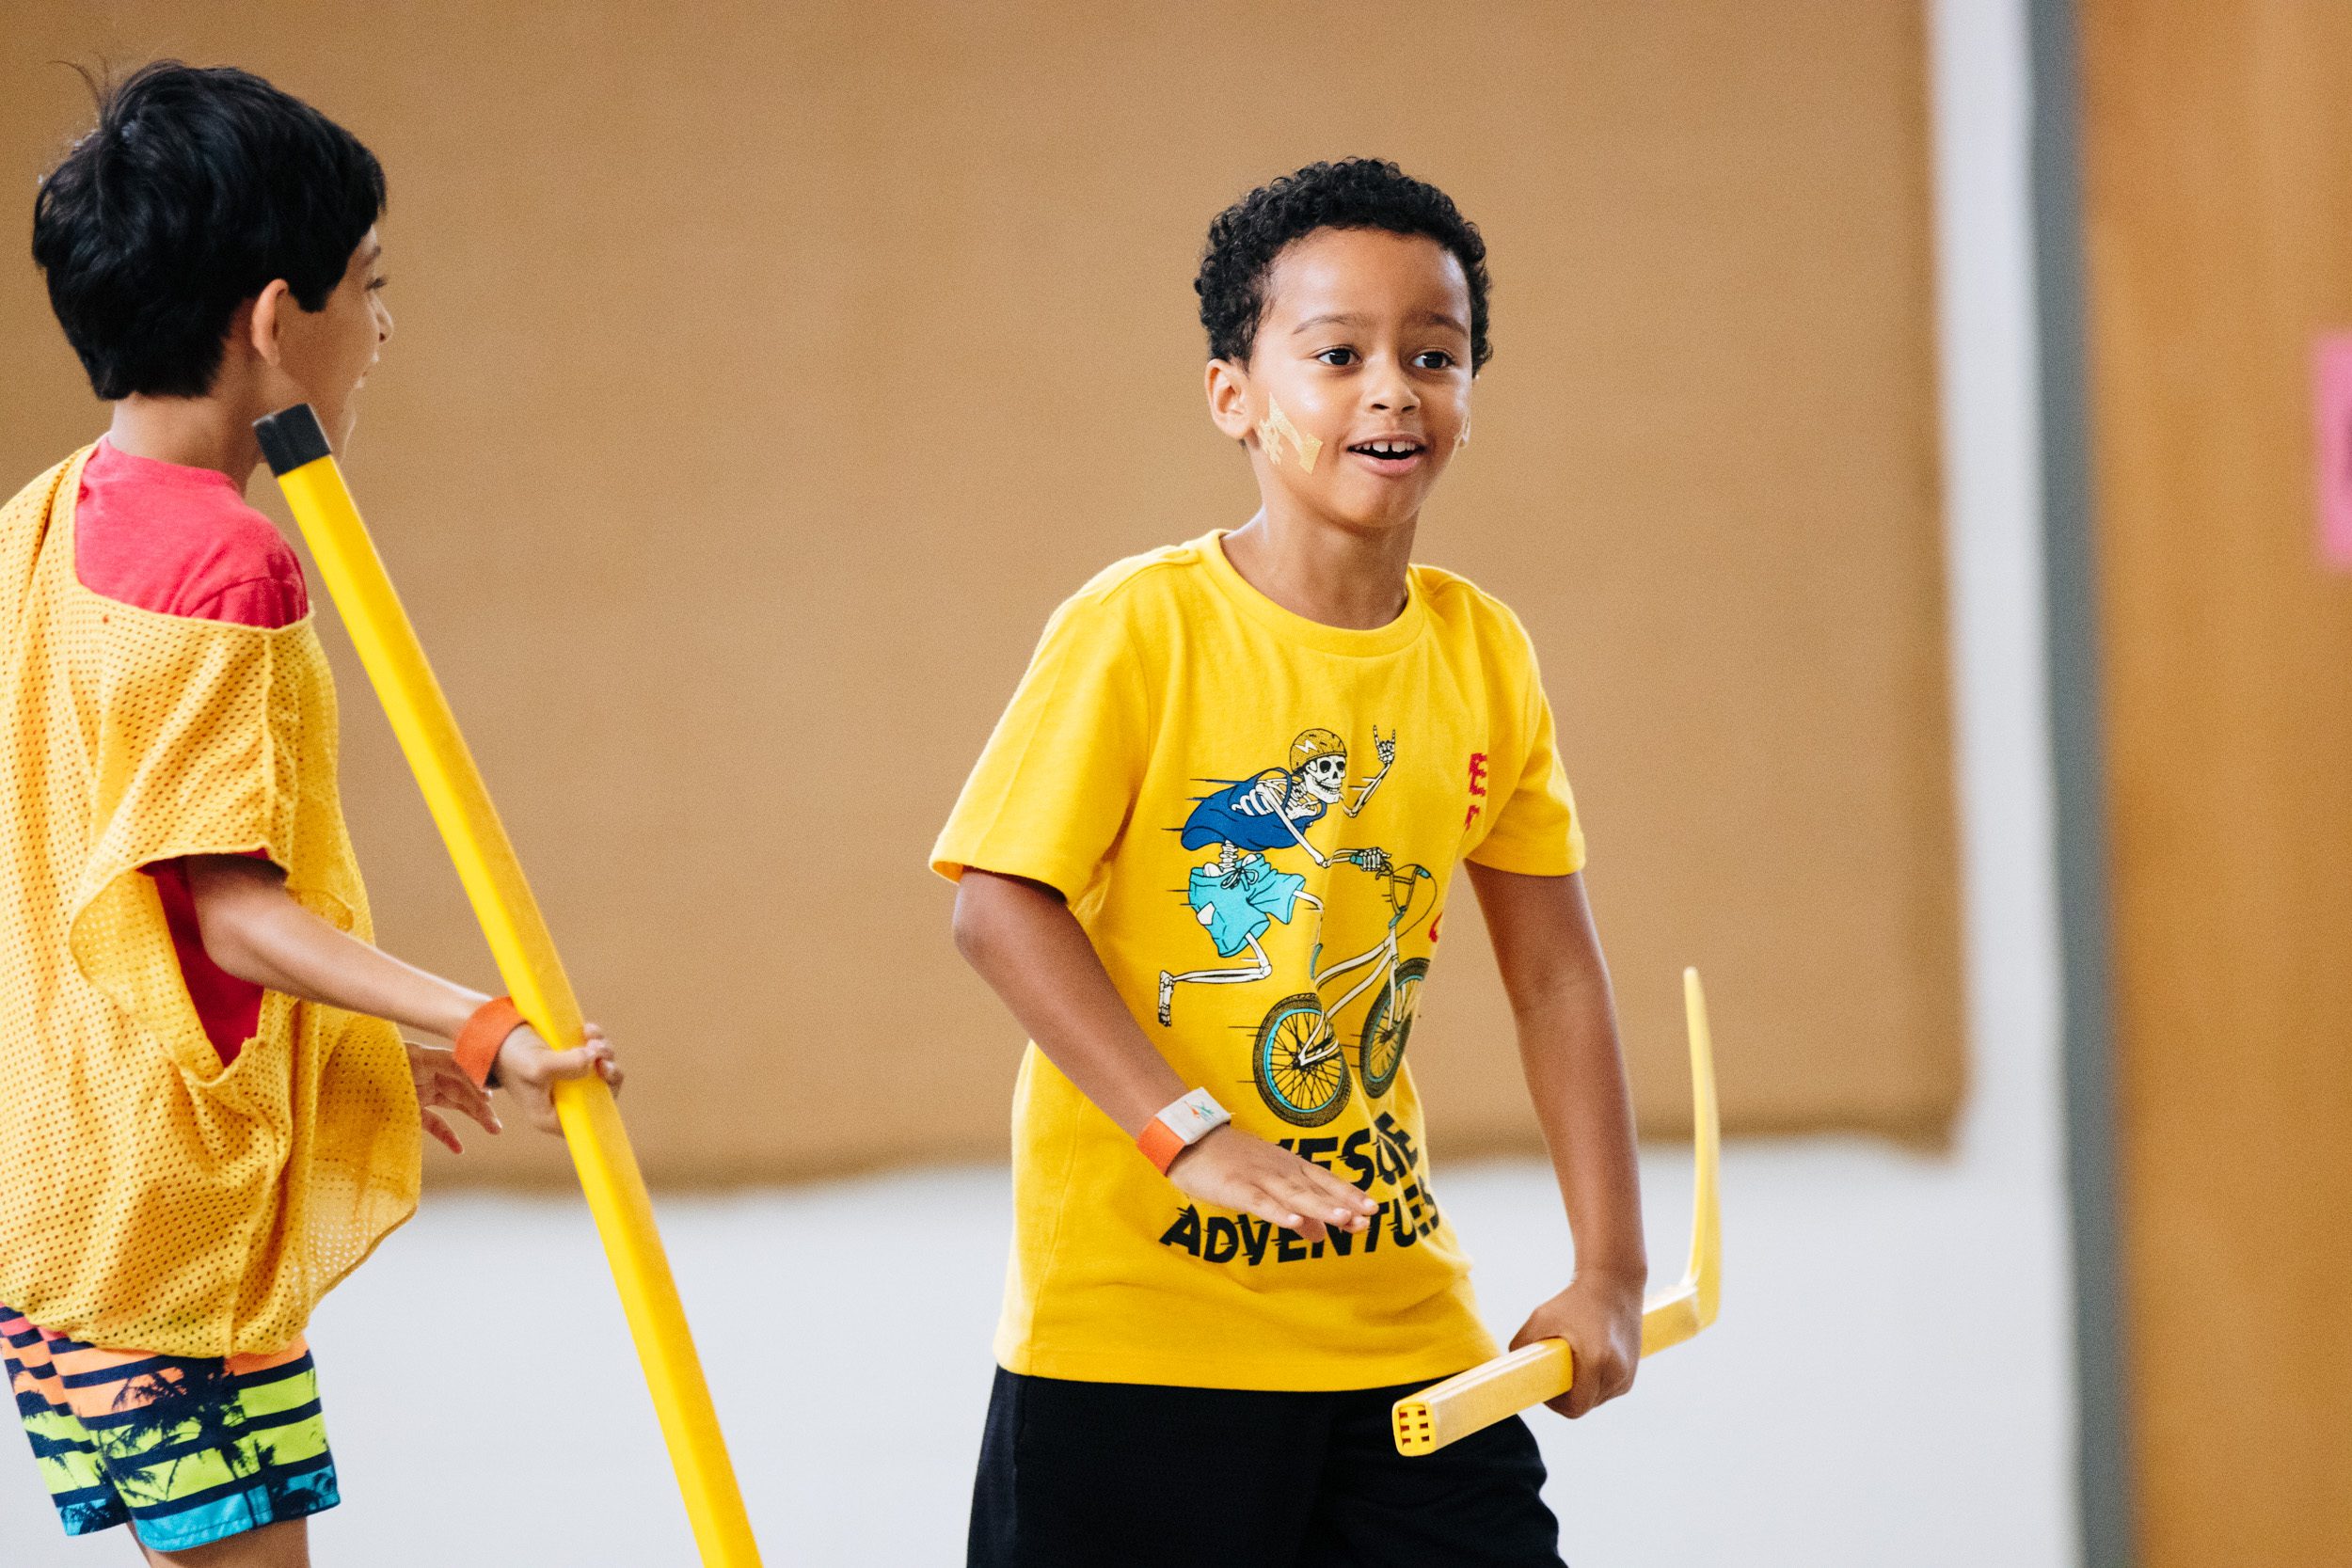 Two boys on the yellow team playing indoor floor hockey